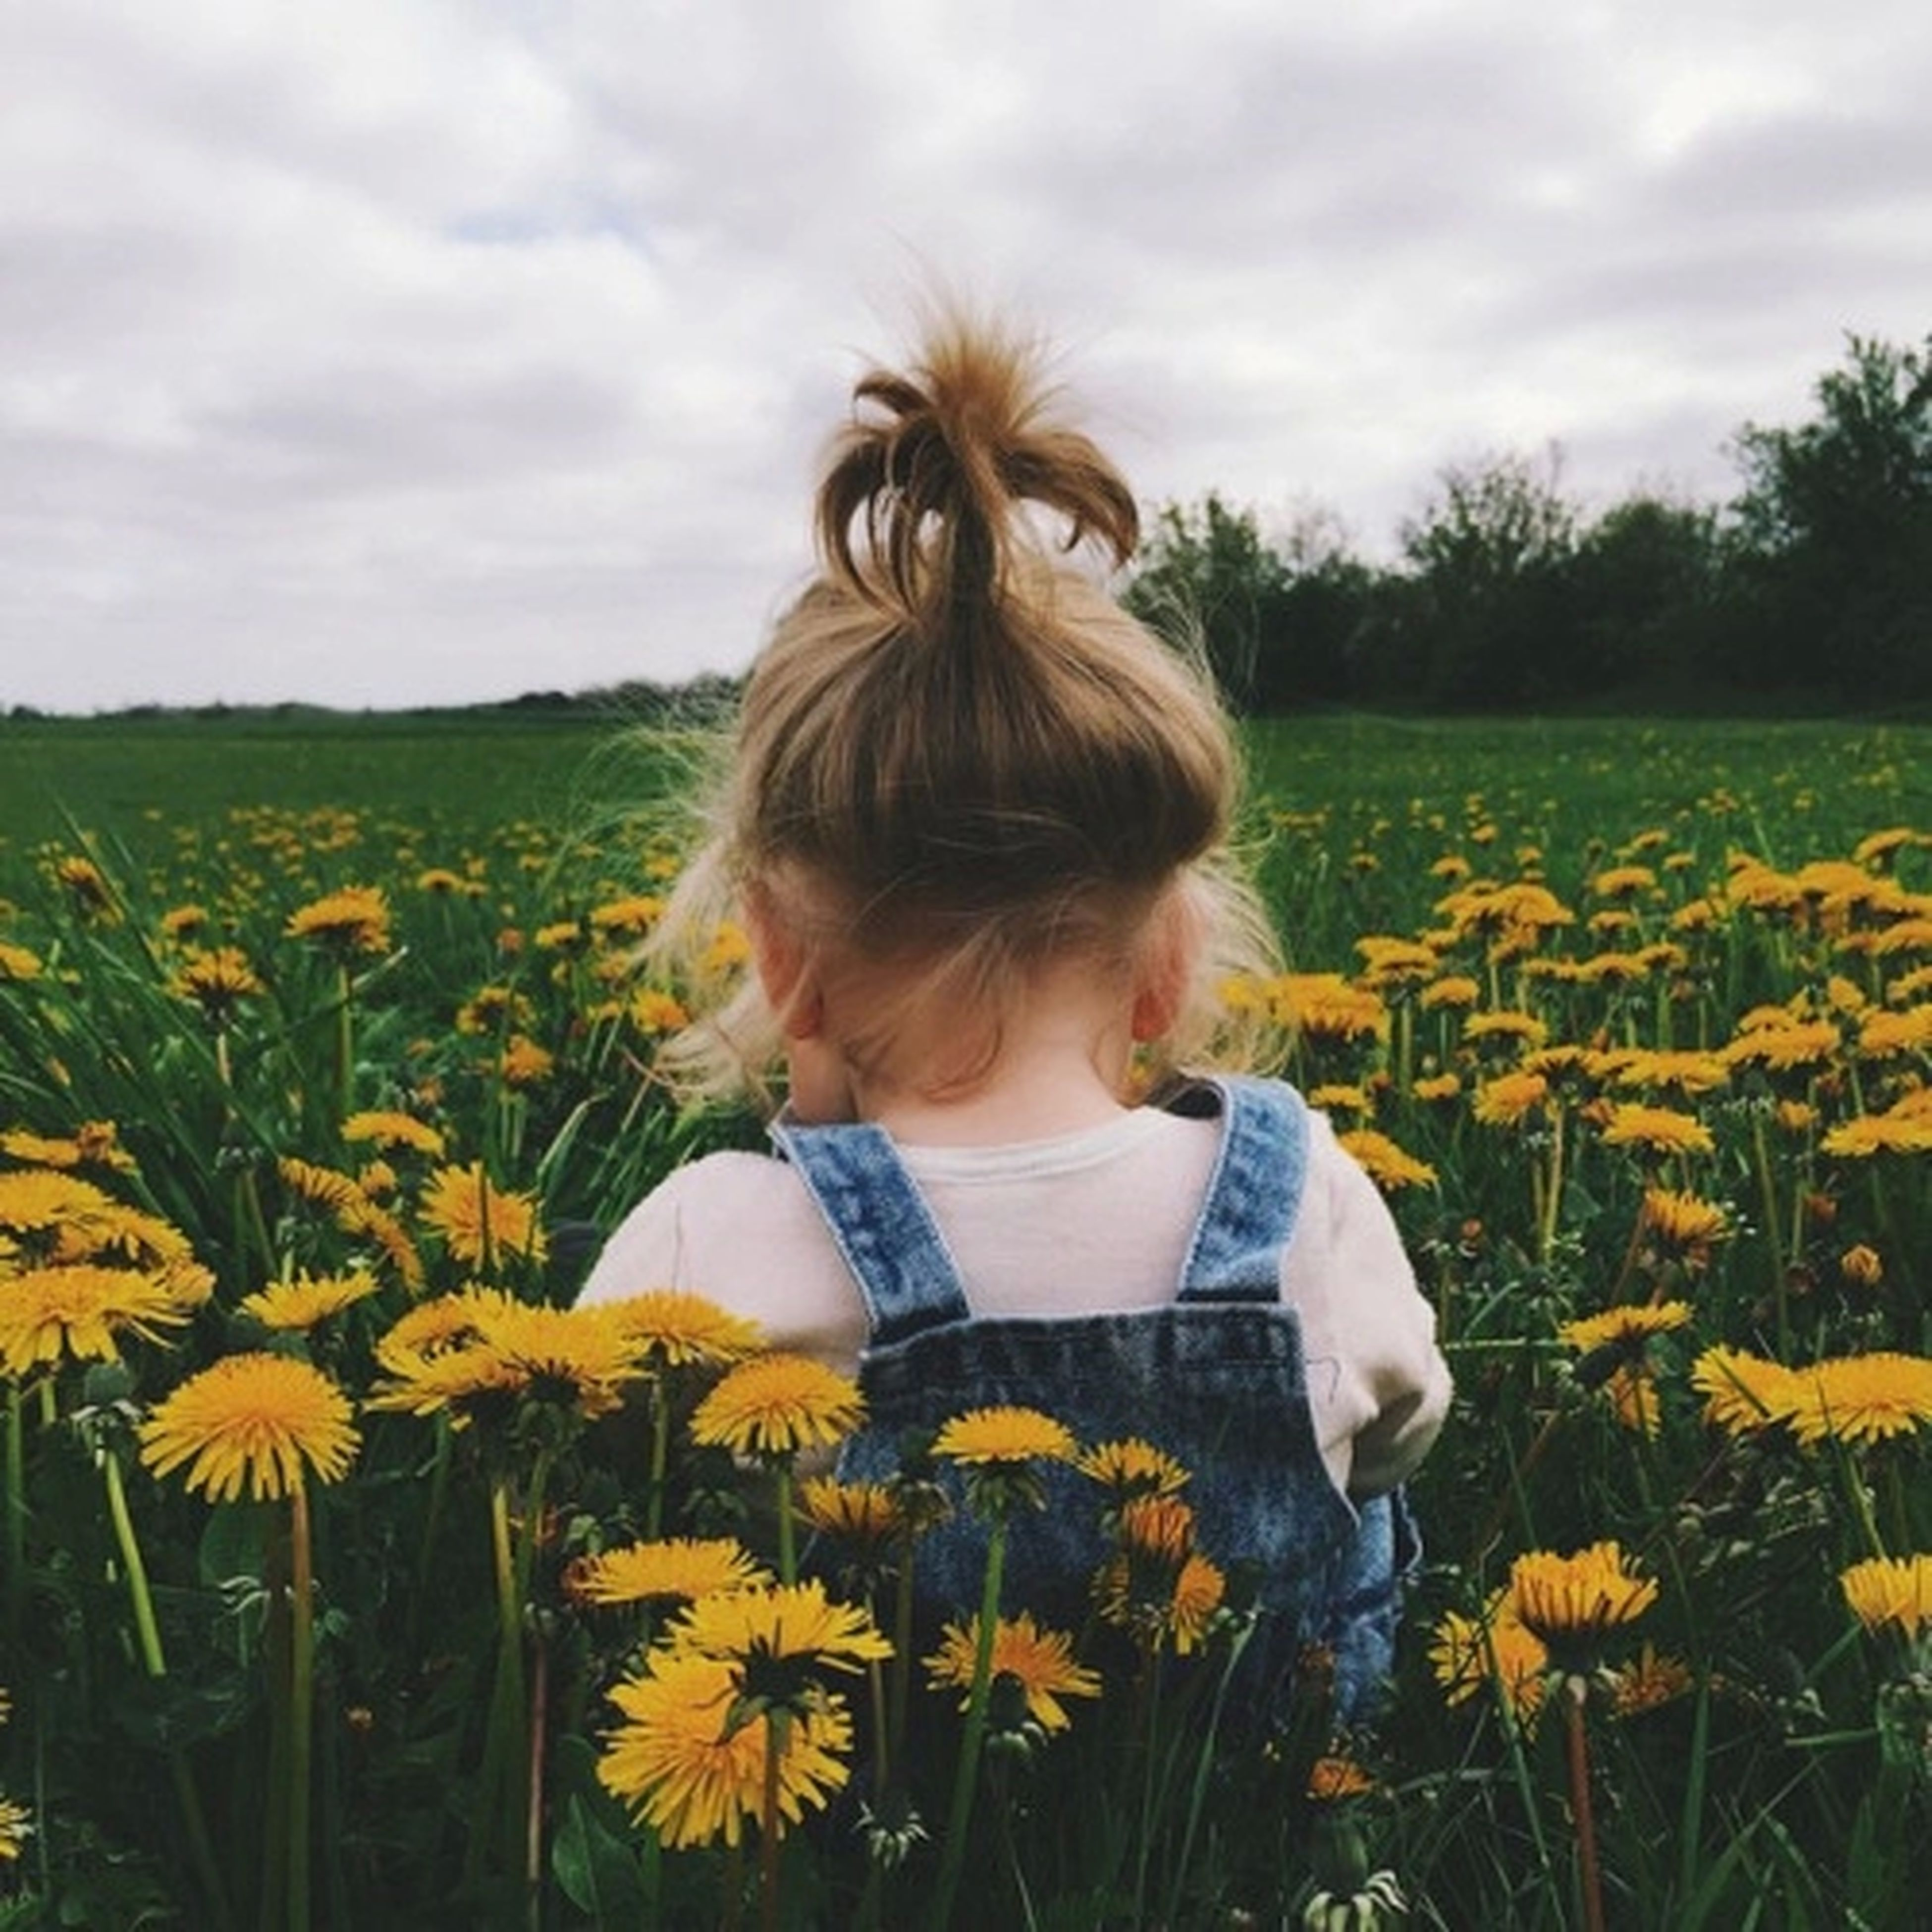 flower, field, sky, beauty in nature, landscape, leisure activity, rural scene, agriculture, fragility, nature, lifestyles, person, growth, long hair, cloud - sky, yellow, rear view, freshness